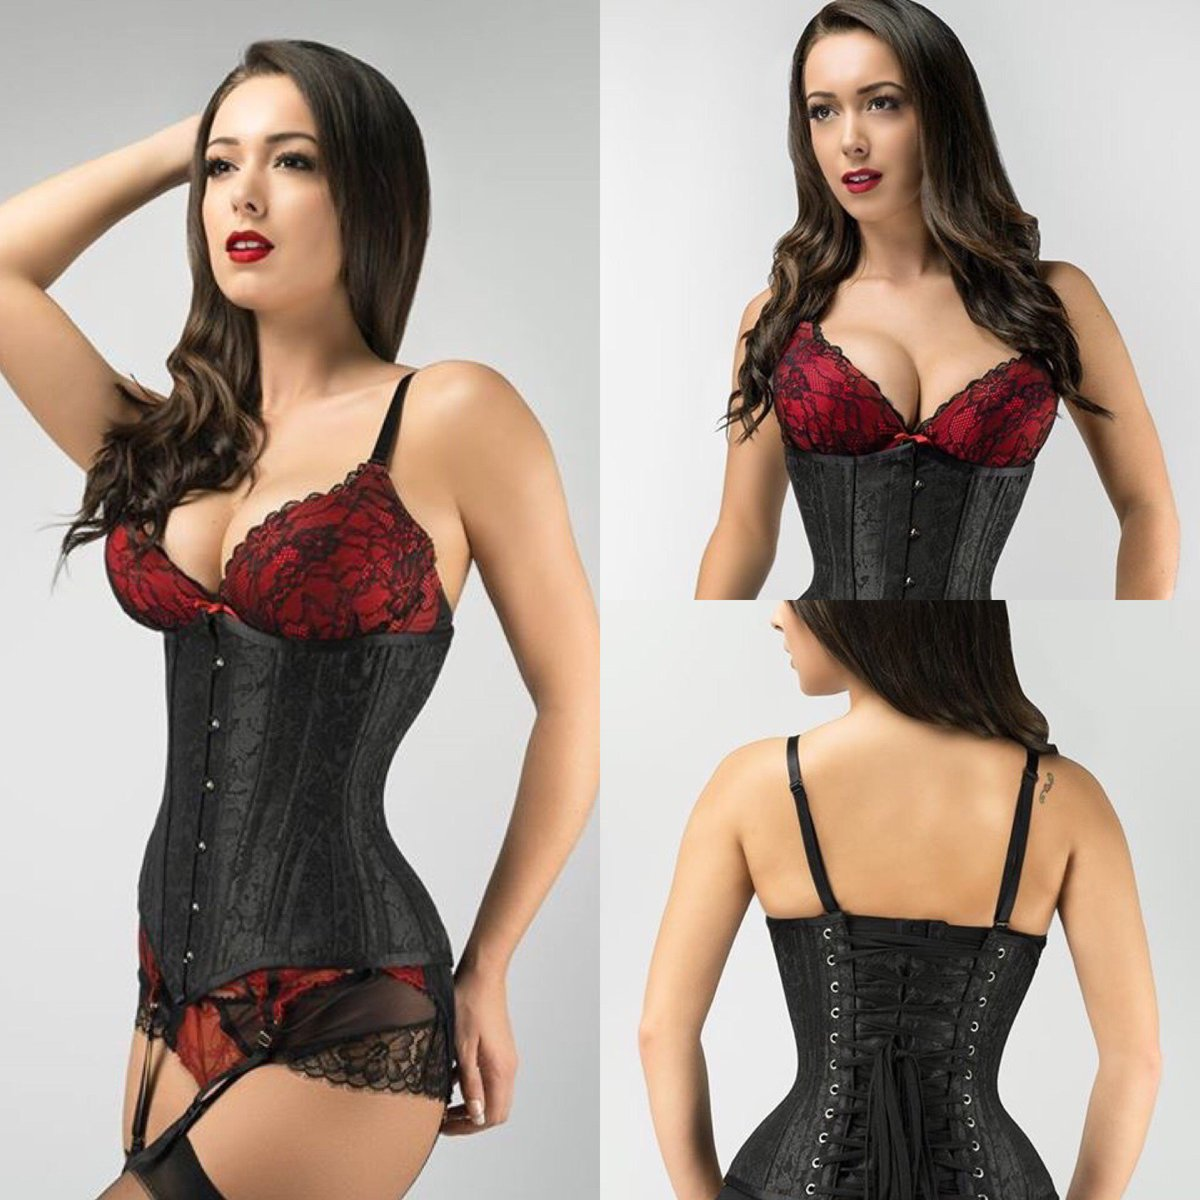 """Brand new in and just $85/£65, this black #ExpertWaistTraining underbust #corset is decorated with a floral #brocade design. 4-5"""" waist reduction. Follow the link to find out more and order. https://t.co/UKyFSydR2Y   #bodyshaping #waisttraining https://t.co/bj8q4cjScA"""